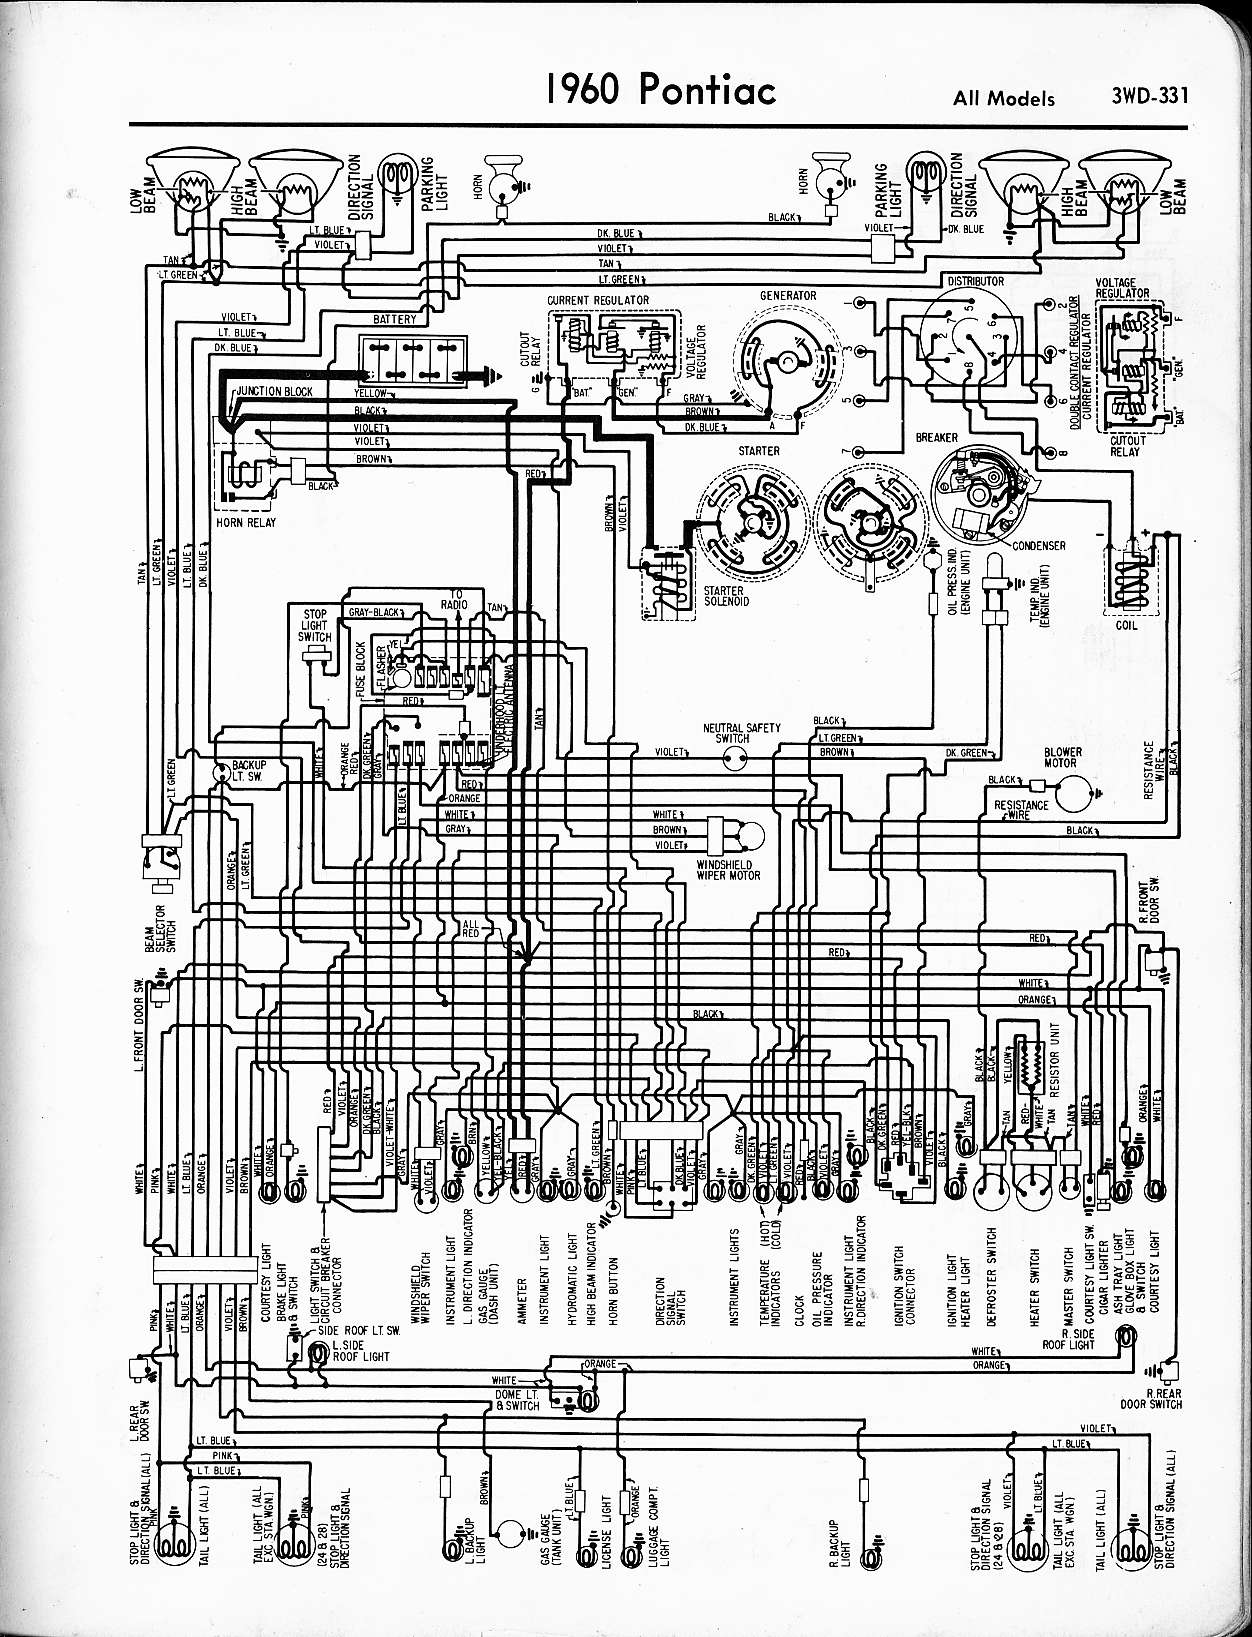 mazda 6 throttle connection diagram, cat5 diagram, secondary ignition pickup sensor probe schematic diagram, mazda tribute cruise control harness diagram, rj45 connector diagram, 12v diesel fuel schematics diagram, on 62 jazz b wiring diagram